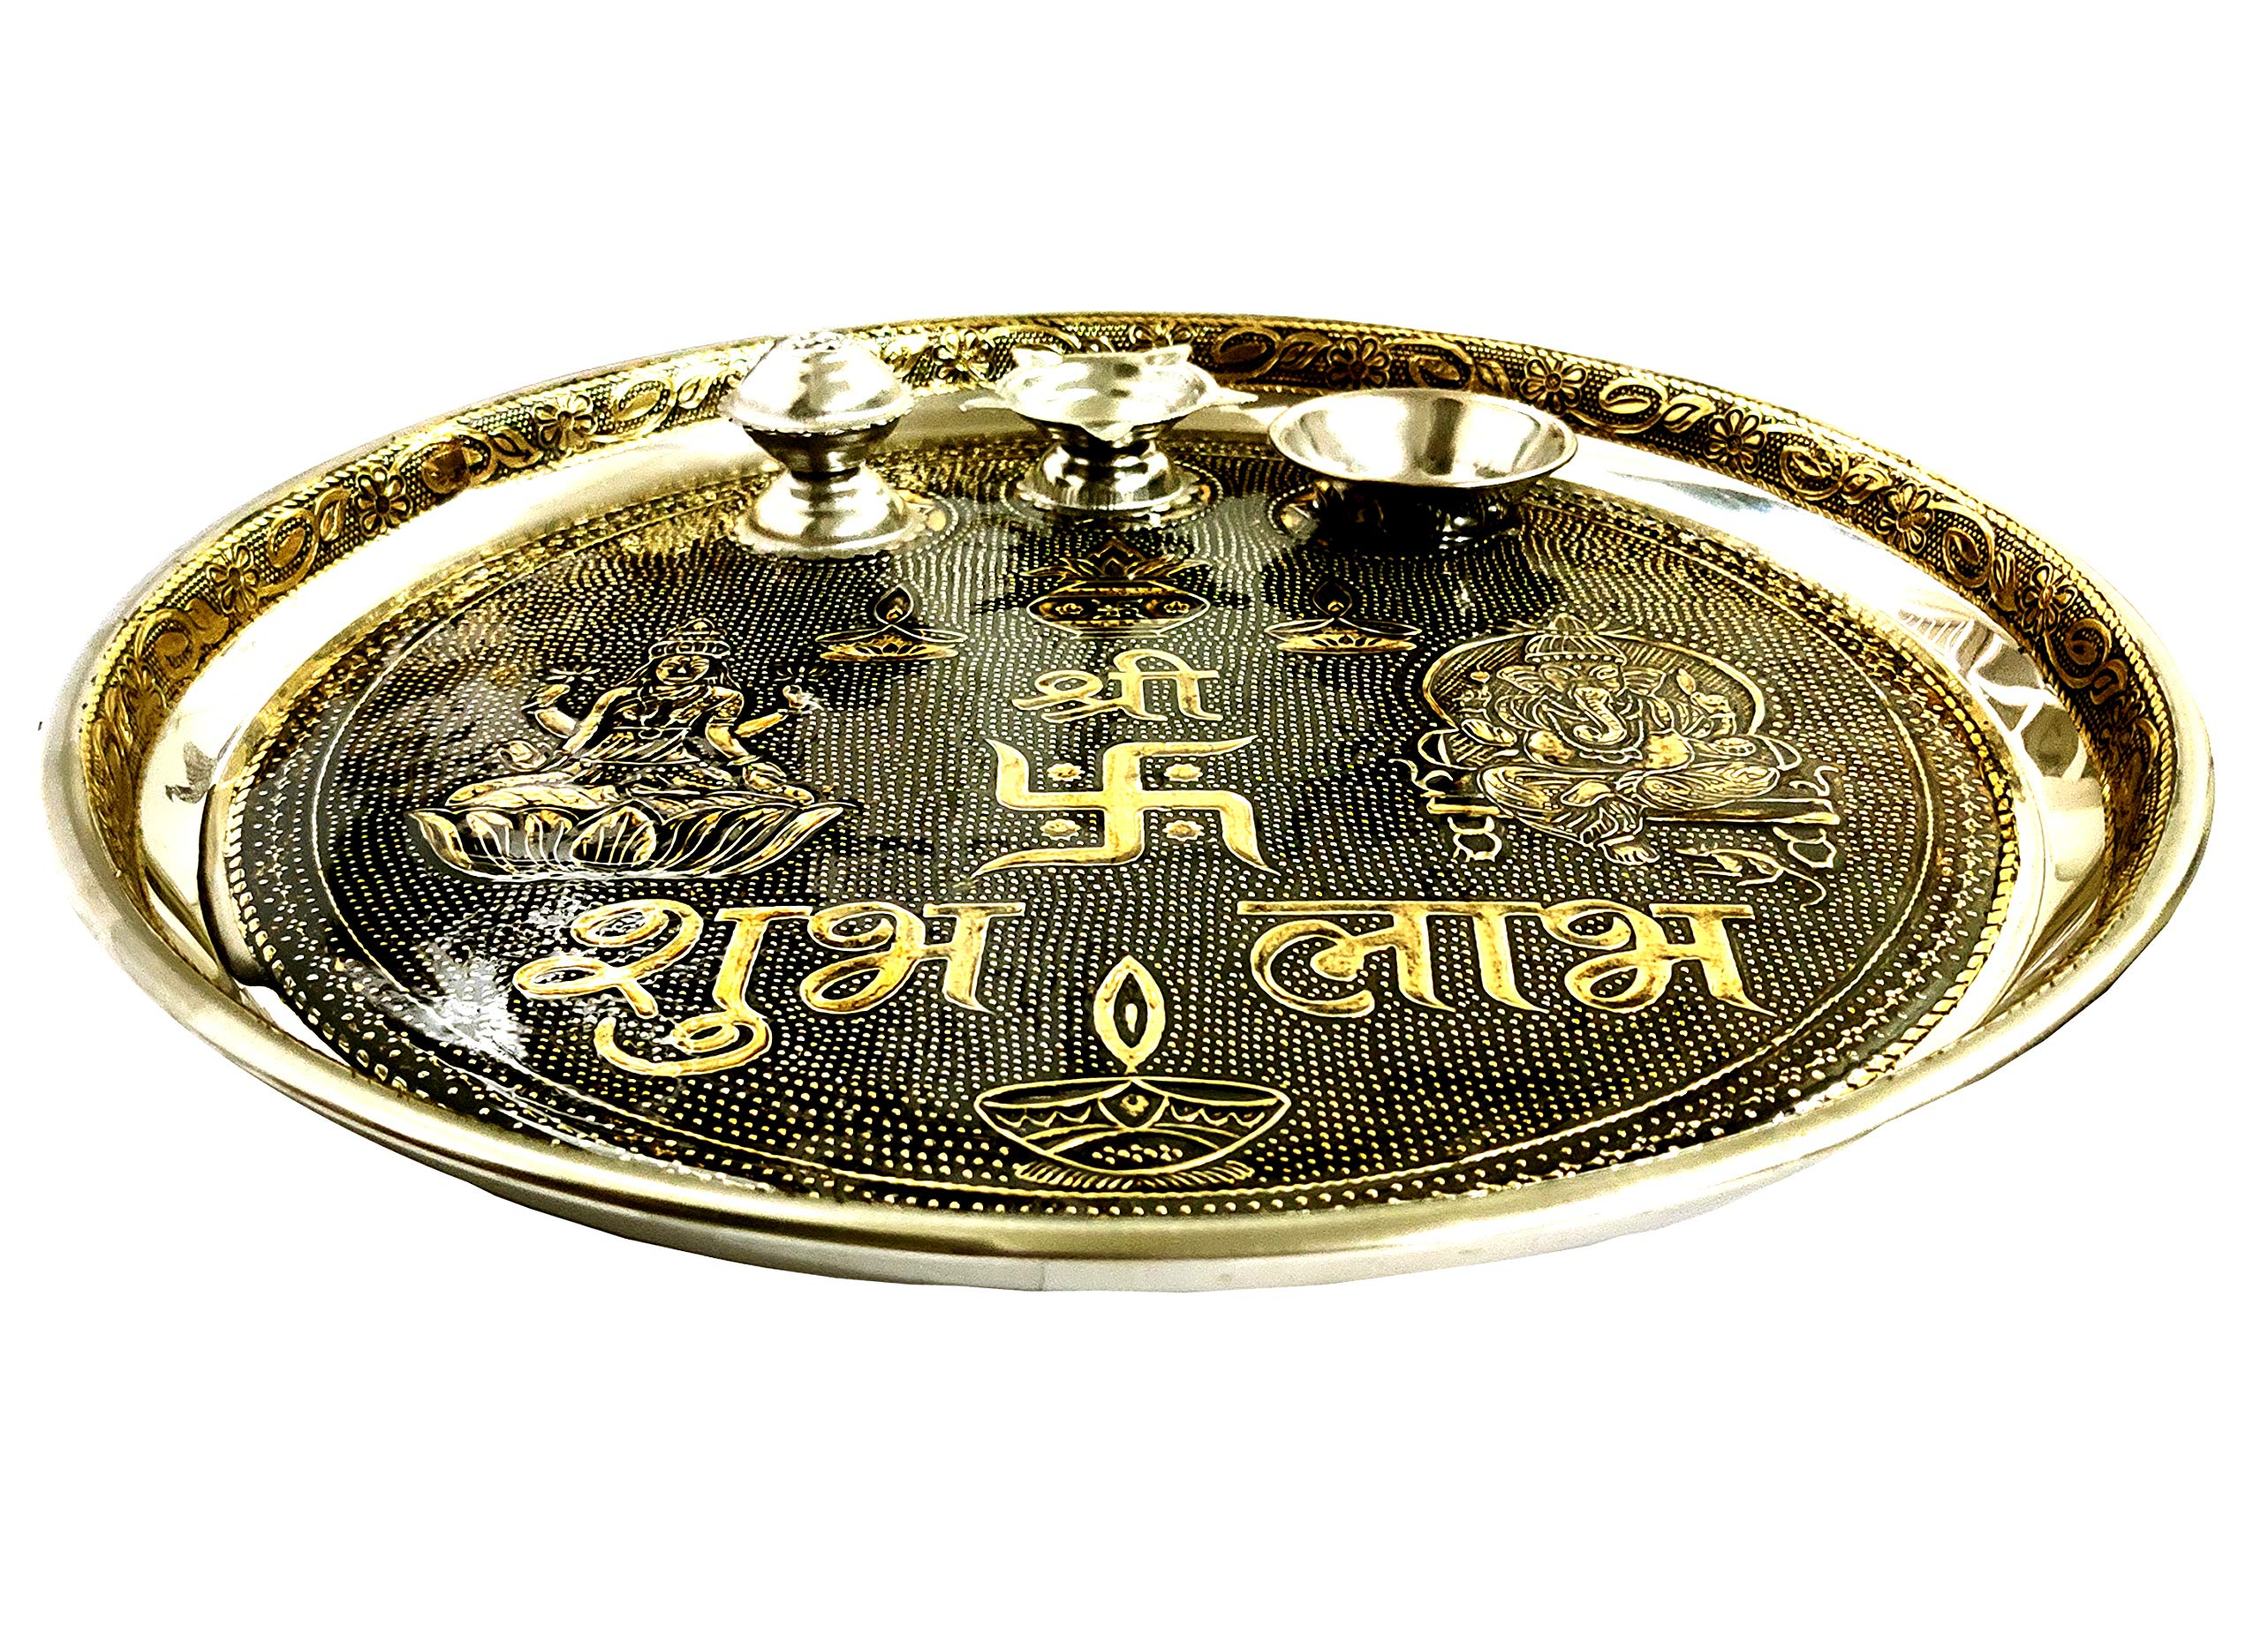 GoldGiftIdeas Silver Plated Flower Shape Sindoor Dabbi with Lid Pack of 5 Return Gifts for Housewarming and Baby Shower Indian Pooja Items for Home Indian KumKum Box for Gift with Potli Bags